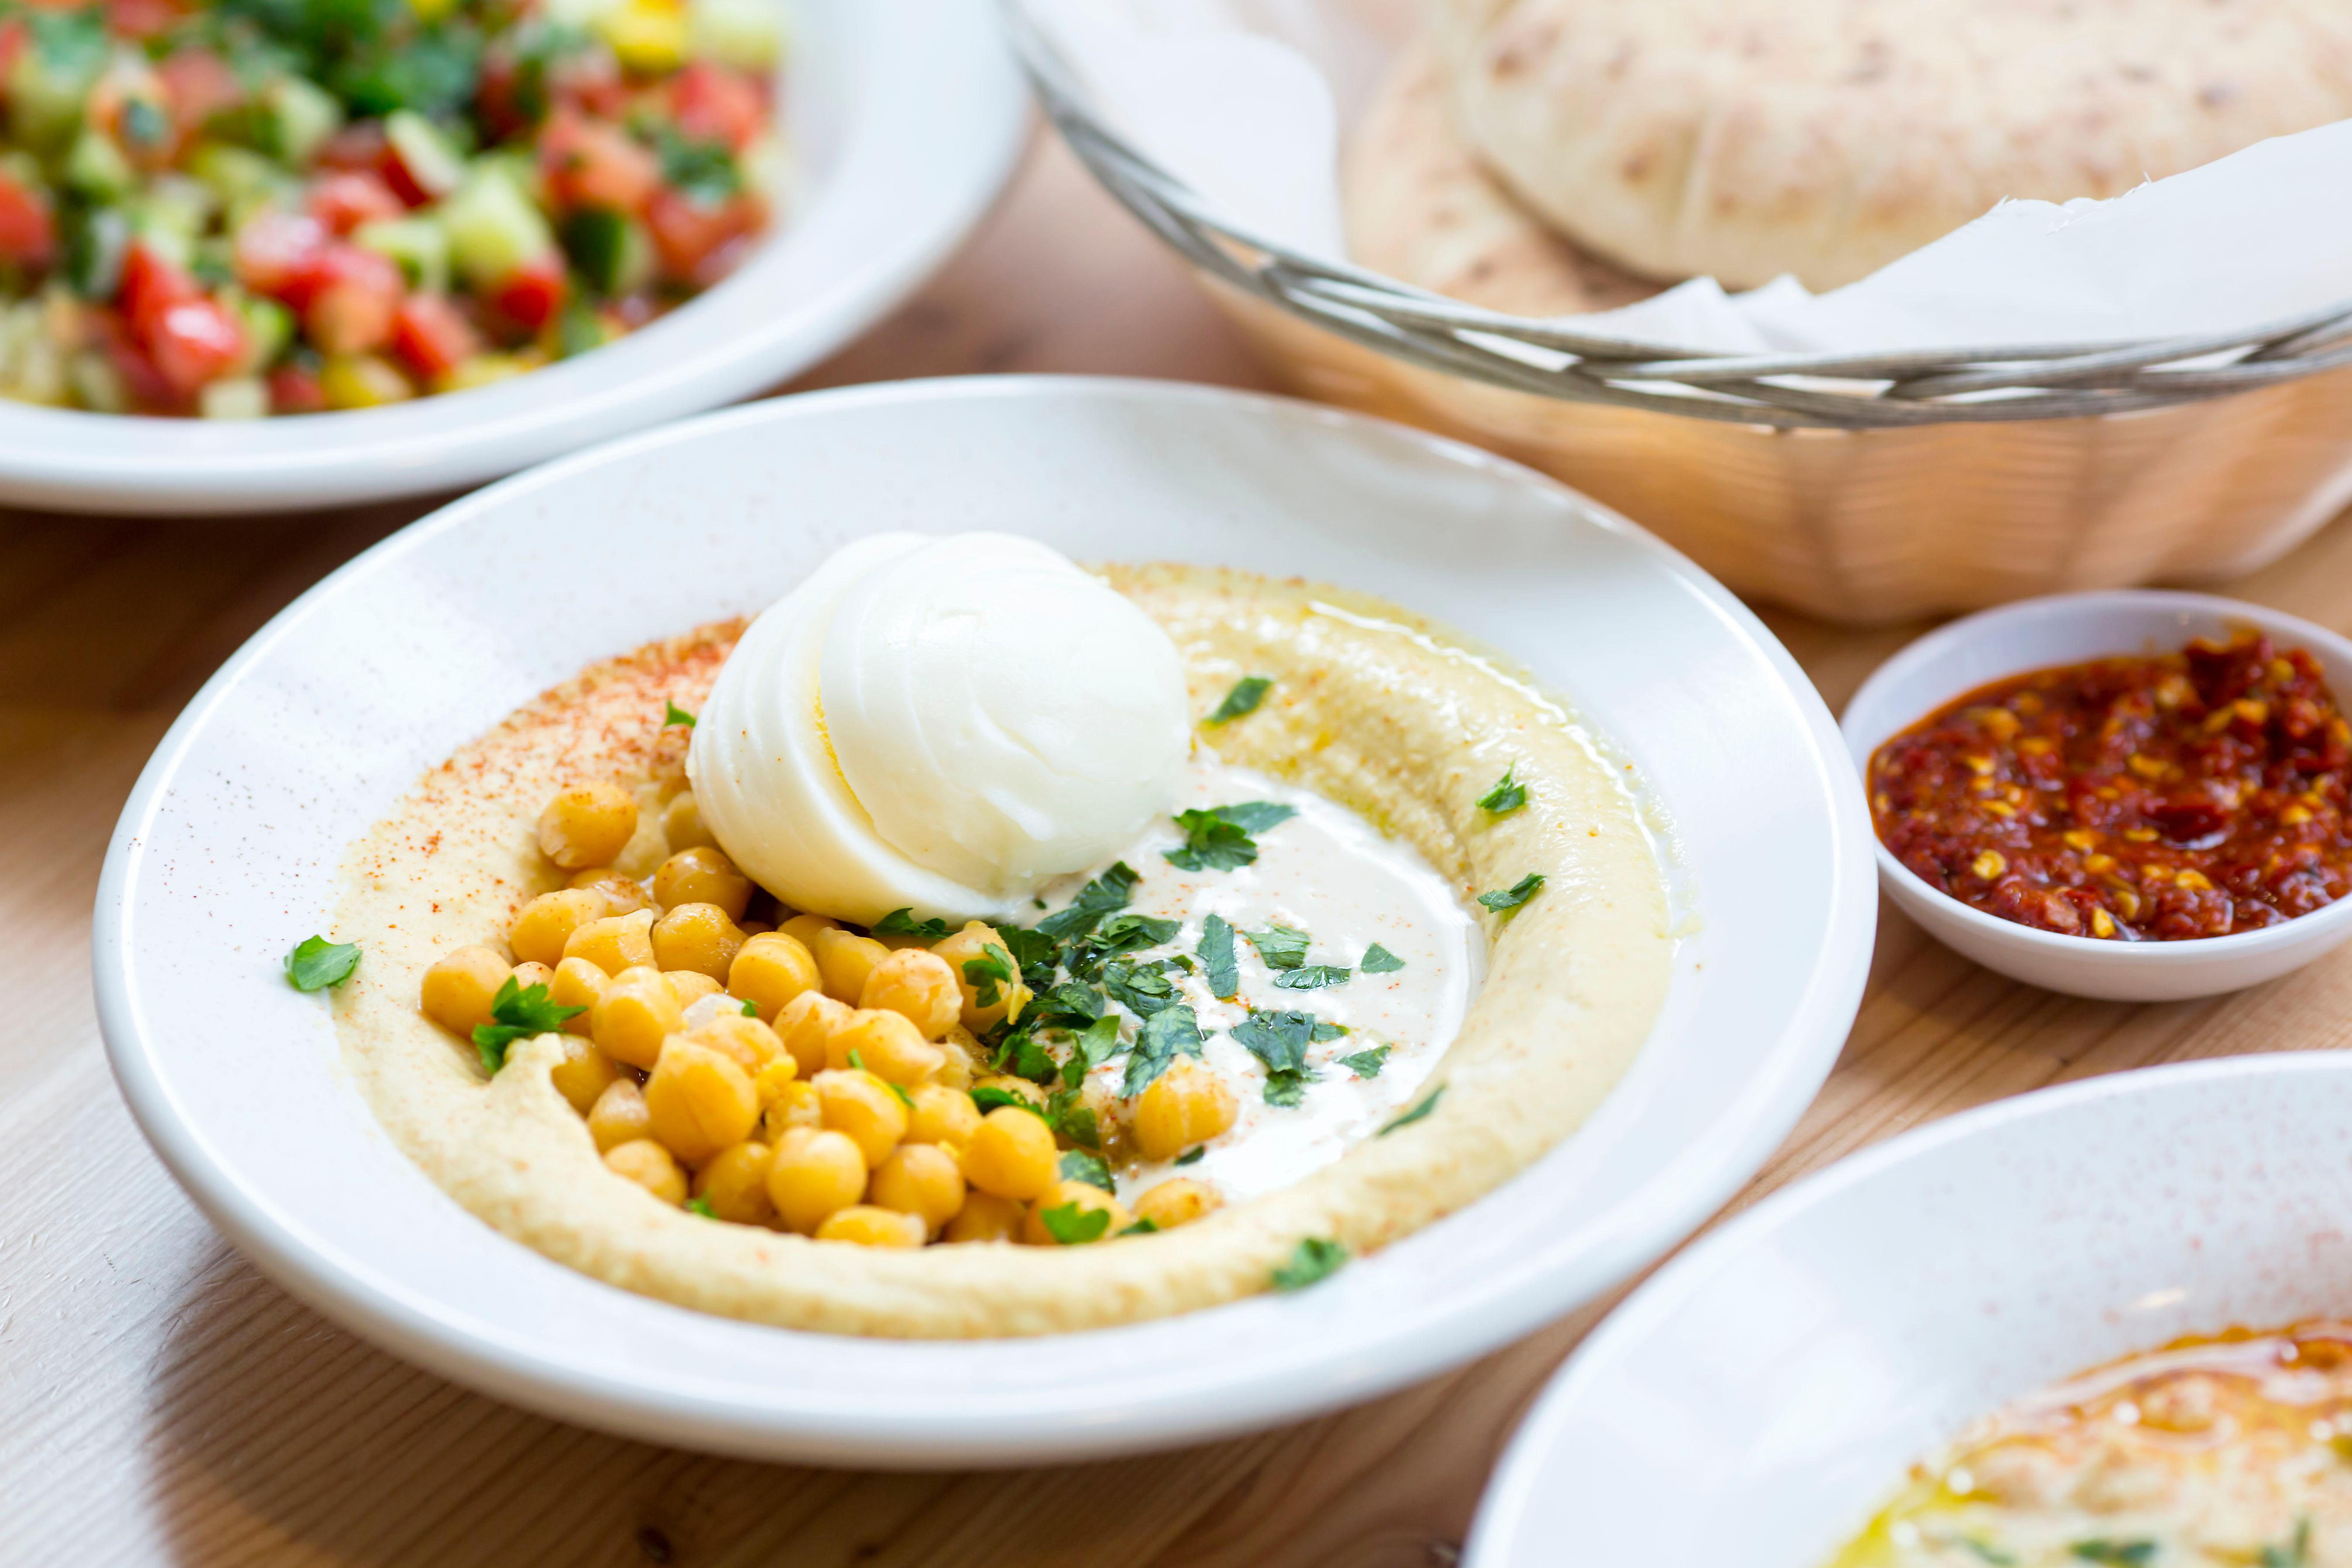 "The Classic - served with tender boiled chickpeas, citrusy nutty tahina, and topped with a side order of egg. Aviv Hummus Bar is a 100% Israeli hummus bar, straight from the streets of Tel Aviv. And now, it's on Capitol Hill! Fun fact: Hummus literally means chickpeas. And while the west has kind of appropriated hummus and made it its own thing, traditional hummus isn't a sauce, or a dip, it's supposed to be a eaten as a meal consisting of smashed chickpeas, ""tahina"" and lemon. Enter Aviv Hummus Bar - trying to educate through this food. The Hummus Bar is located on 107 15th Ave E, Seattle. (Image: Sy Bean / Seattle Refined)"